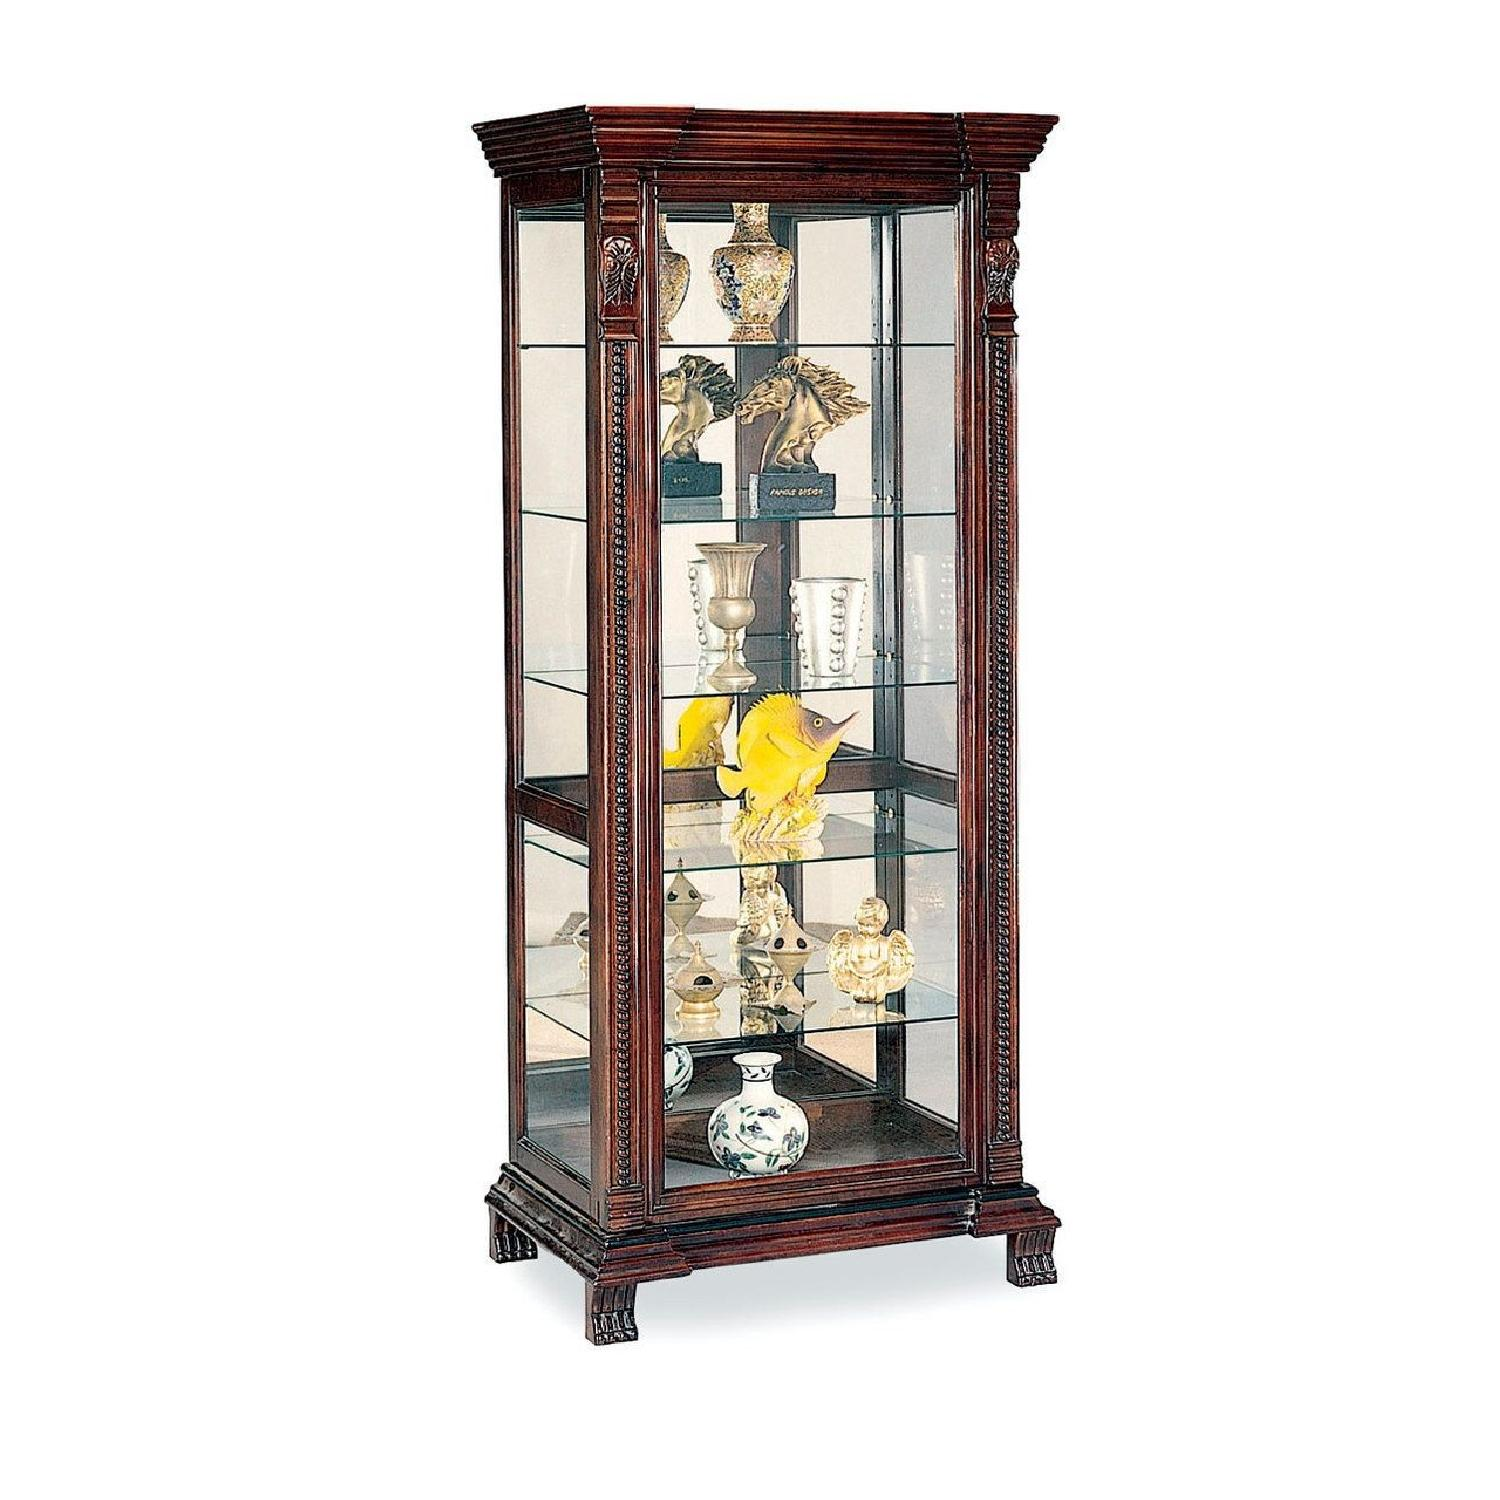 Curio Cabinet With Intricate Woodwork Carvings - image-1